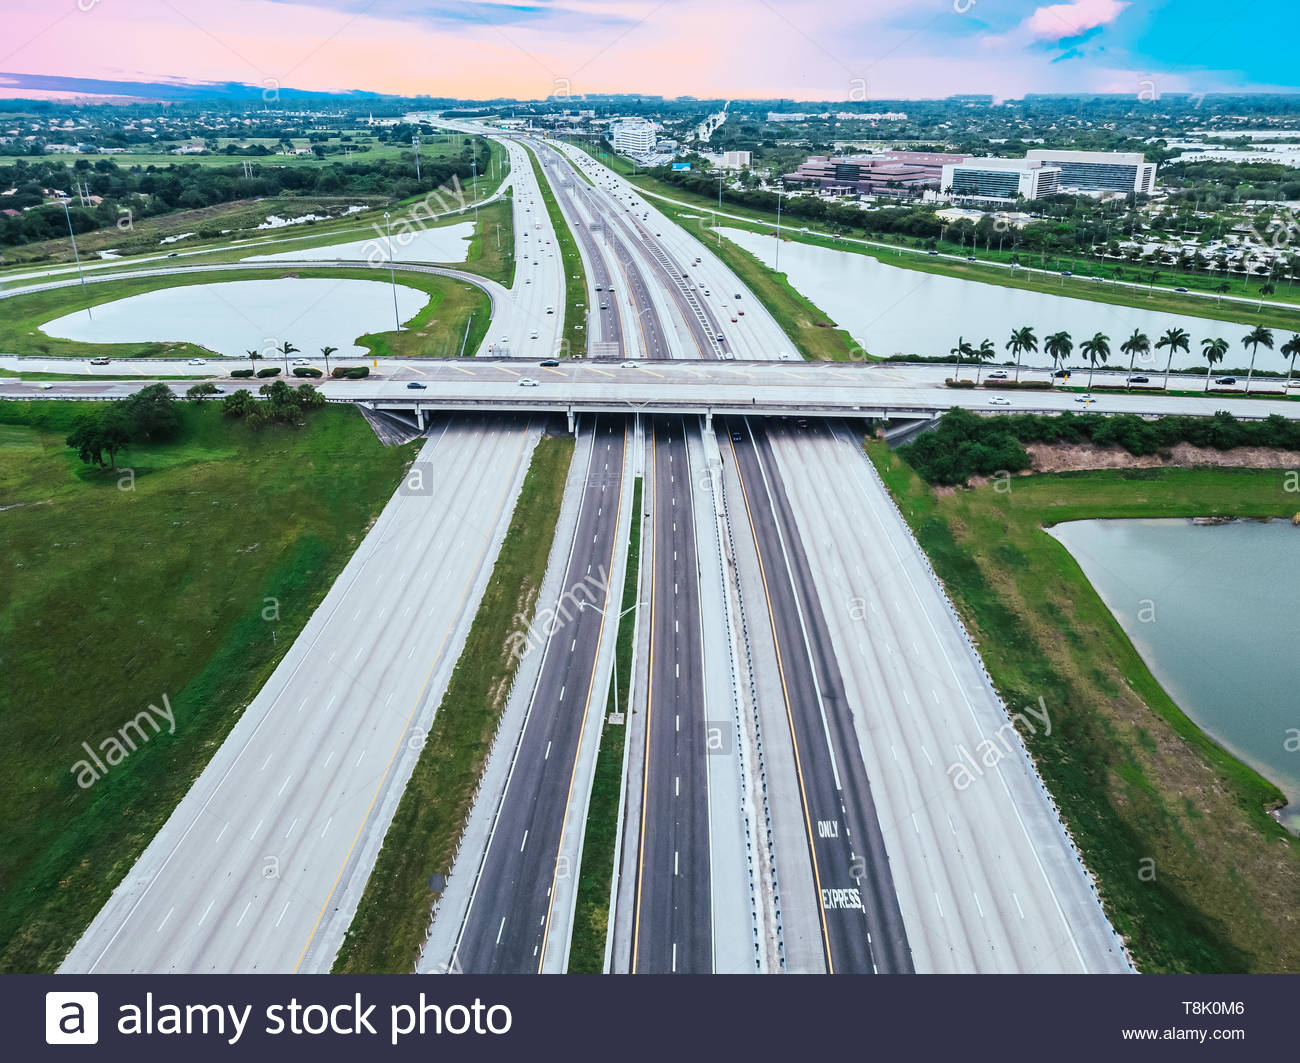 Regular car traffic on Interstate I75 South Bond in South Florida, USA, aerial view - Stock Image